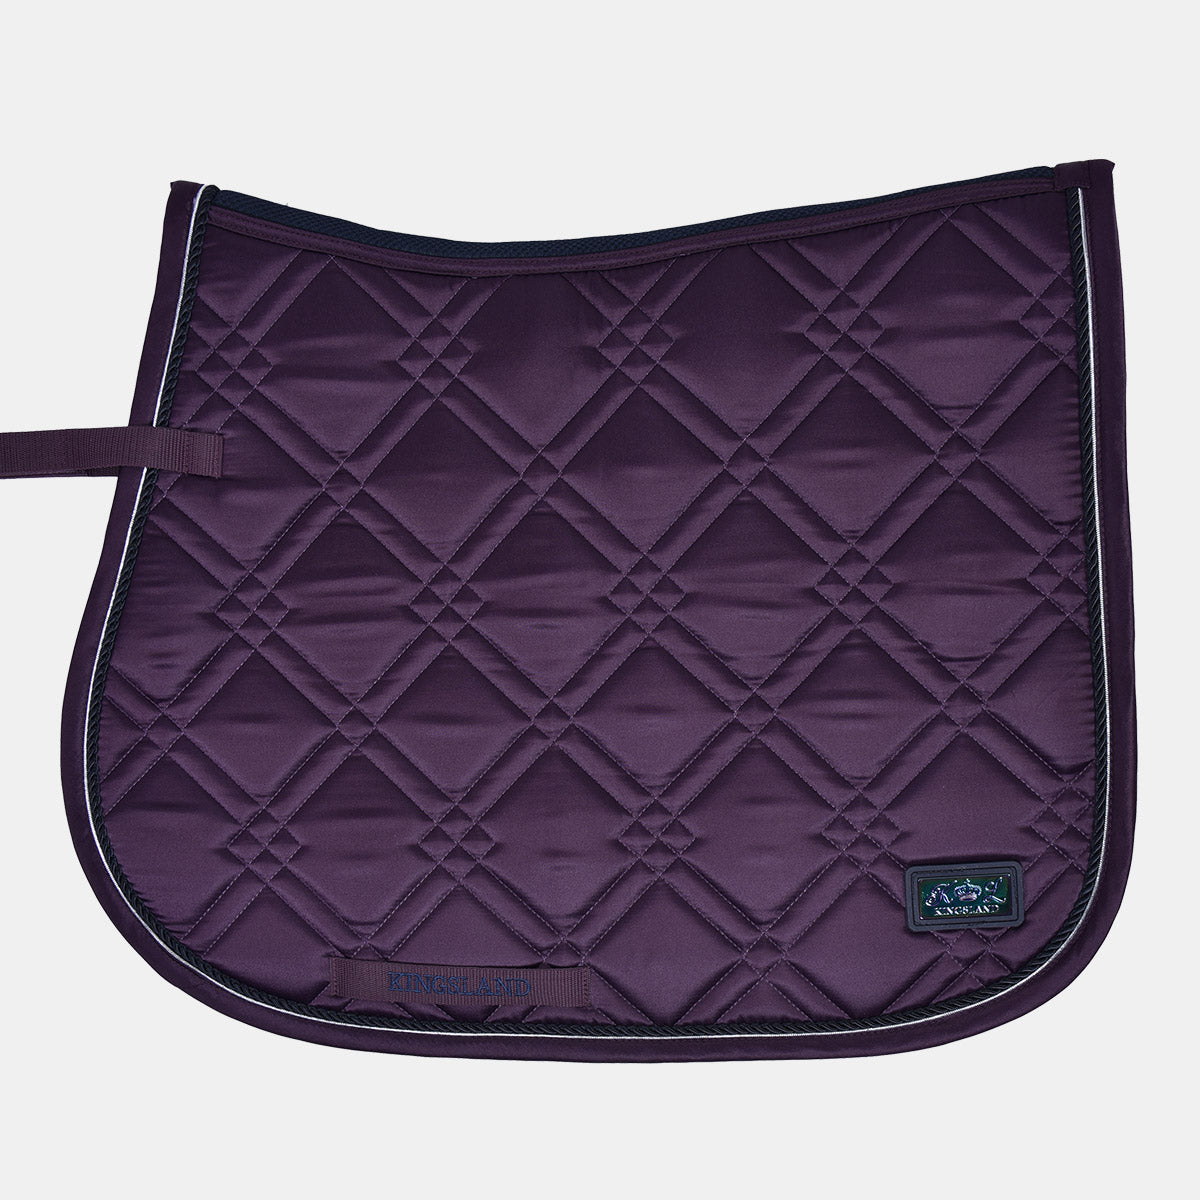 Kingsland Seldovia Dressage Saddlepad in Violet Vintage